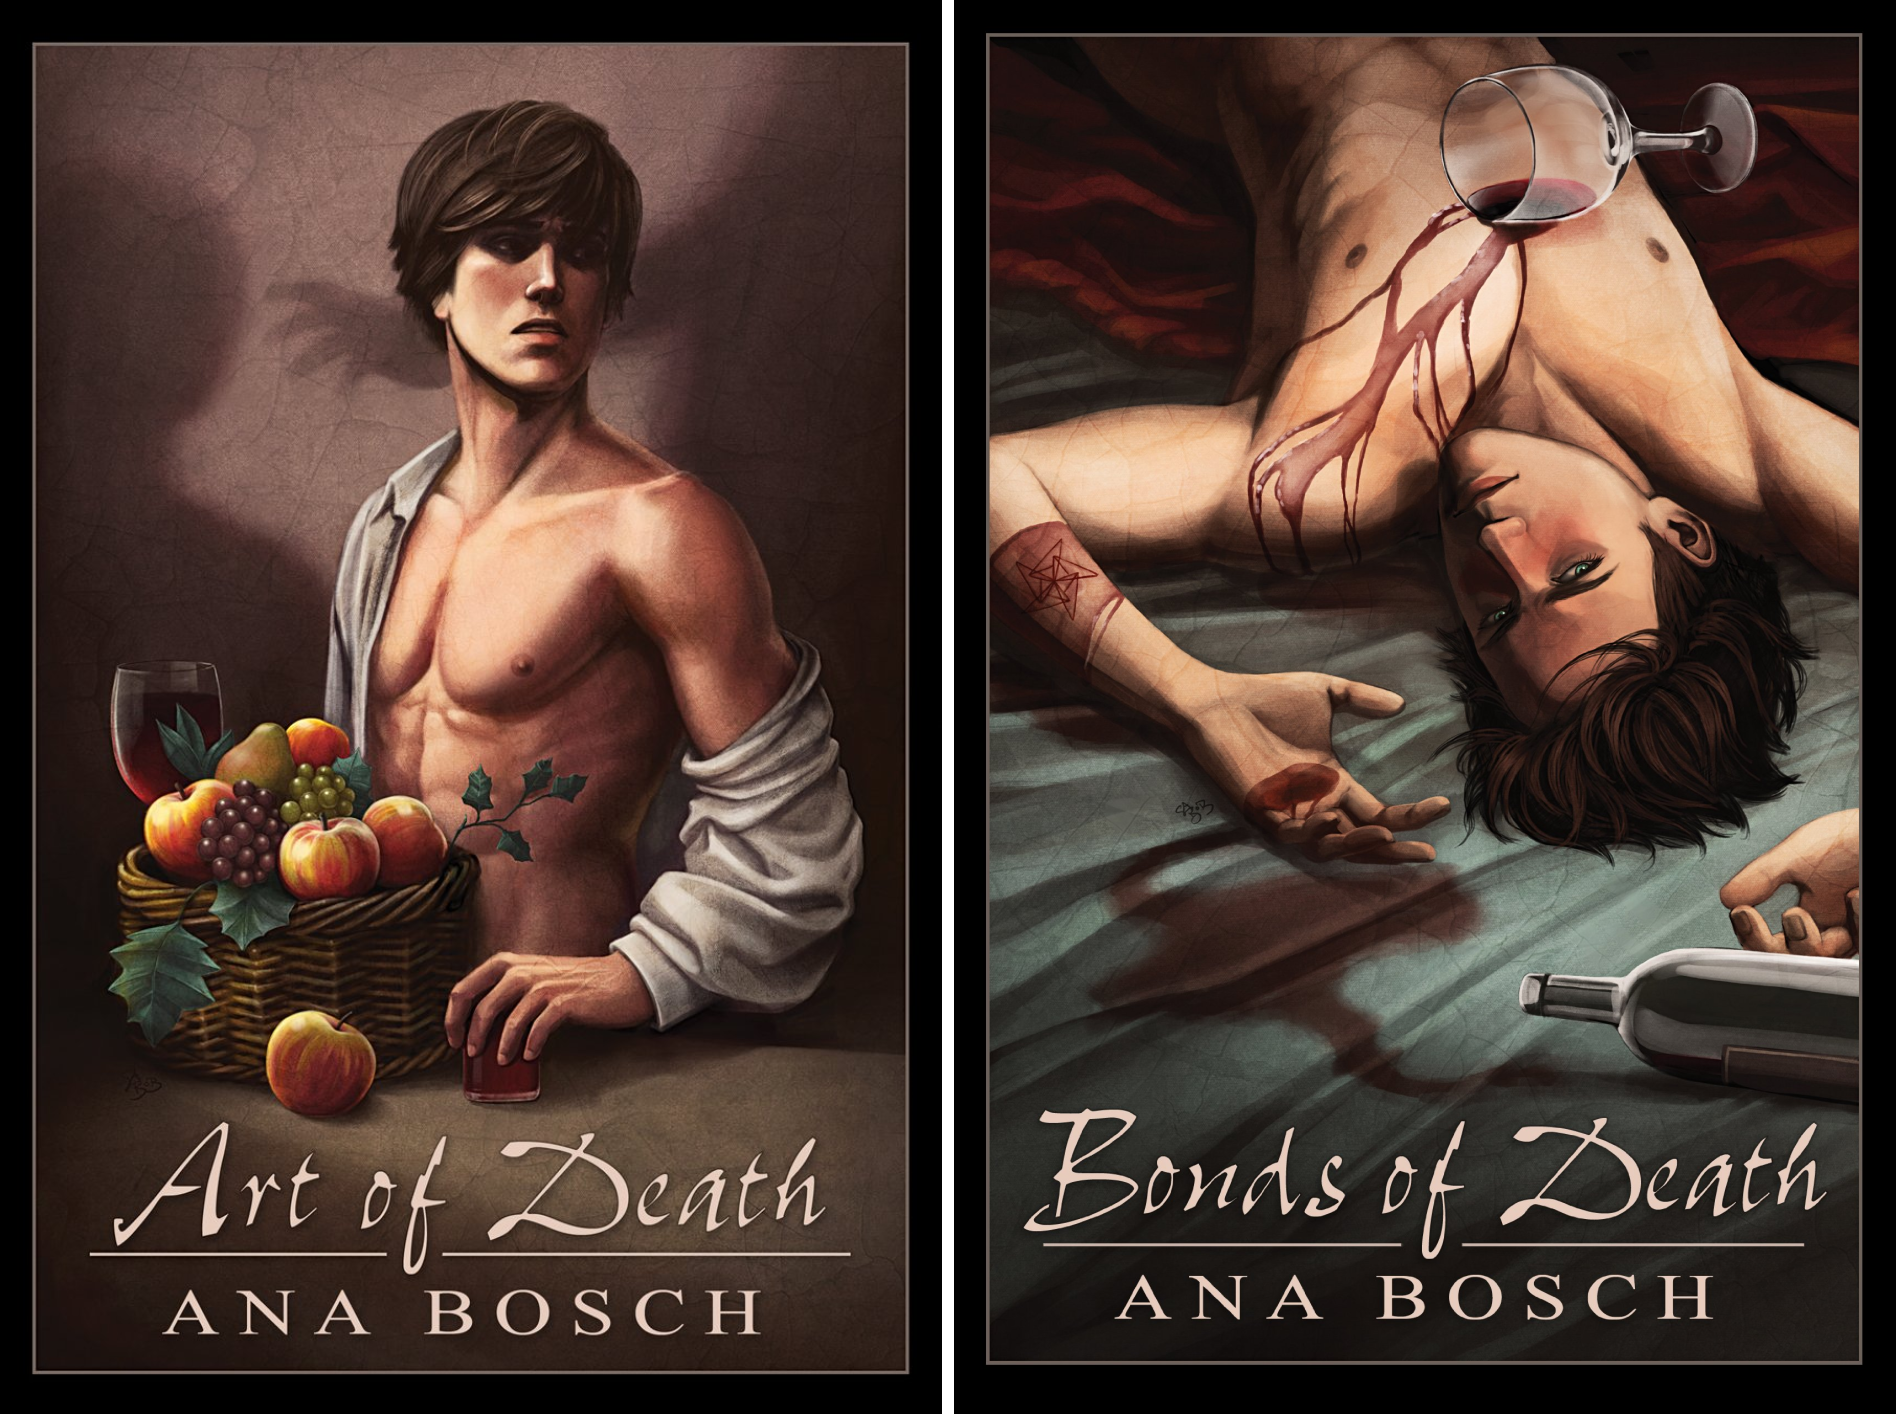 Art of Death and Bonds of Death (2 Book Series)